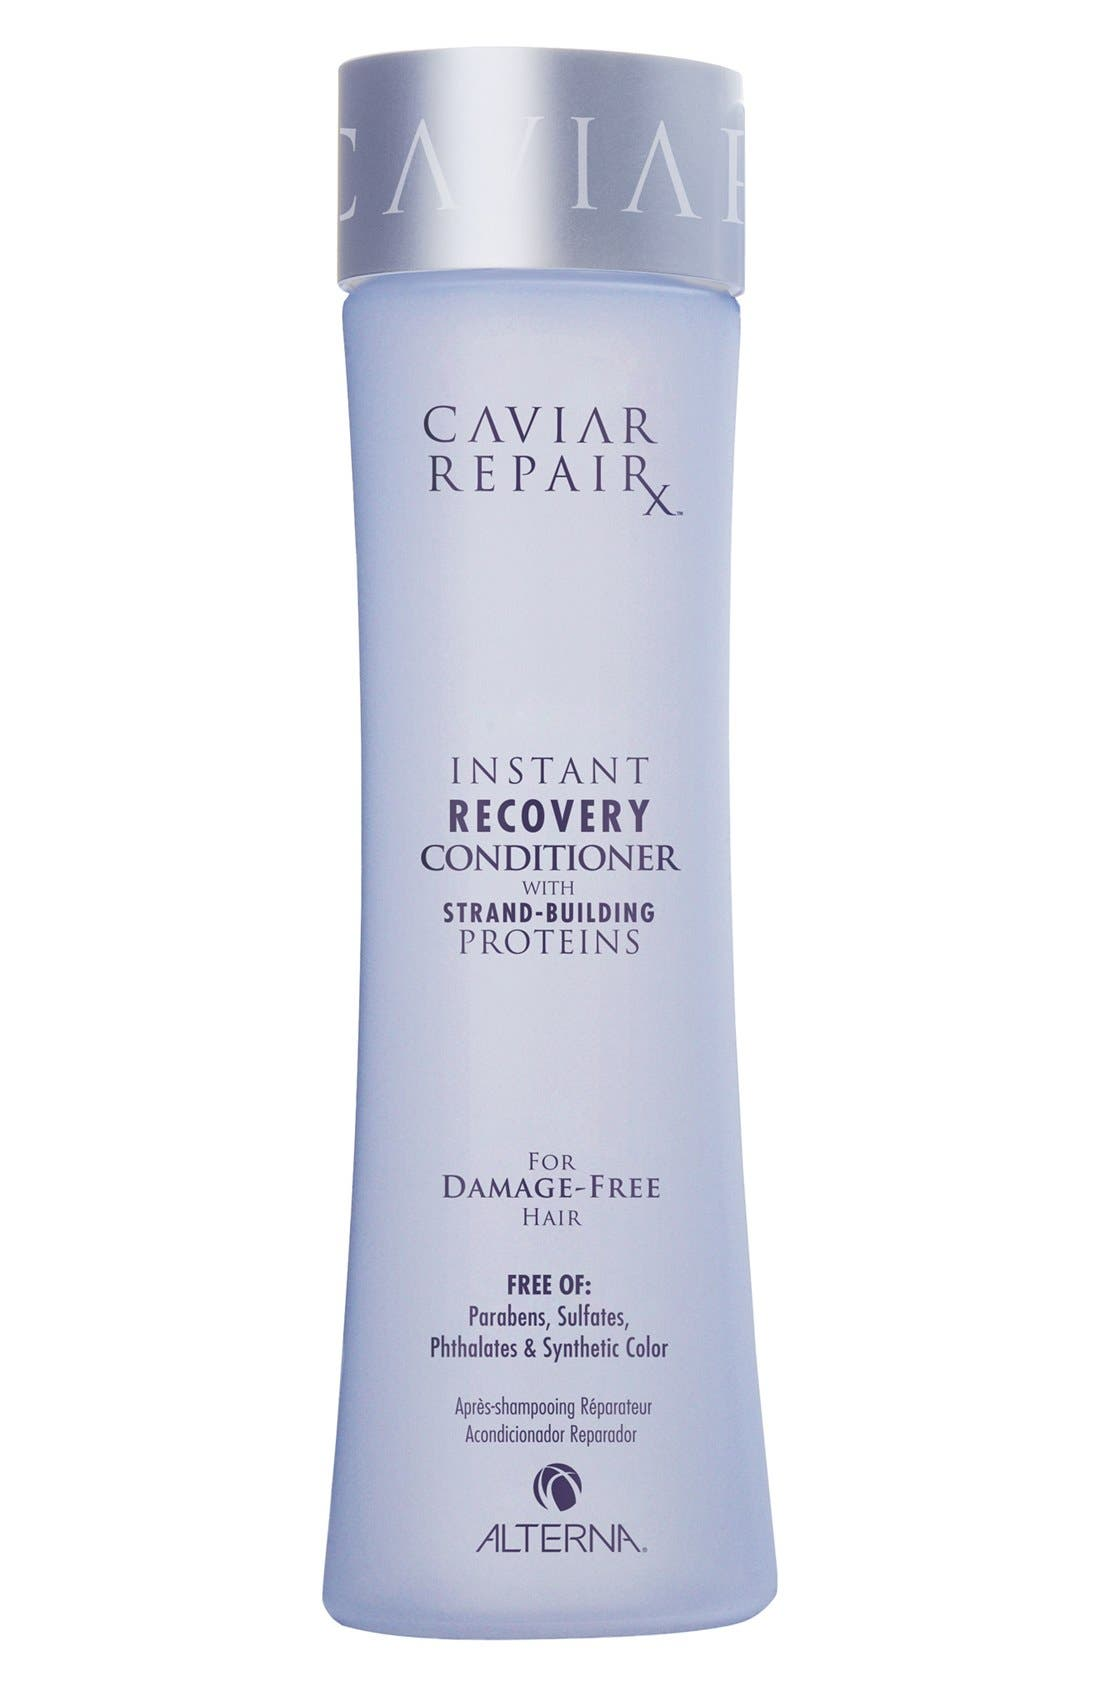 ALTERNA® Caviar Repair Rx Instant Recovery Conditioner